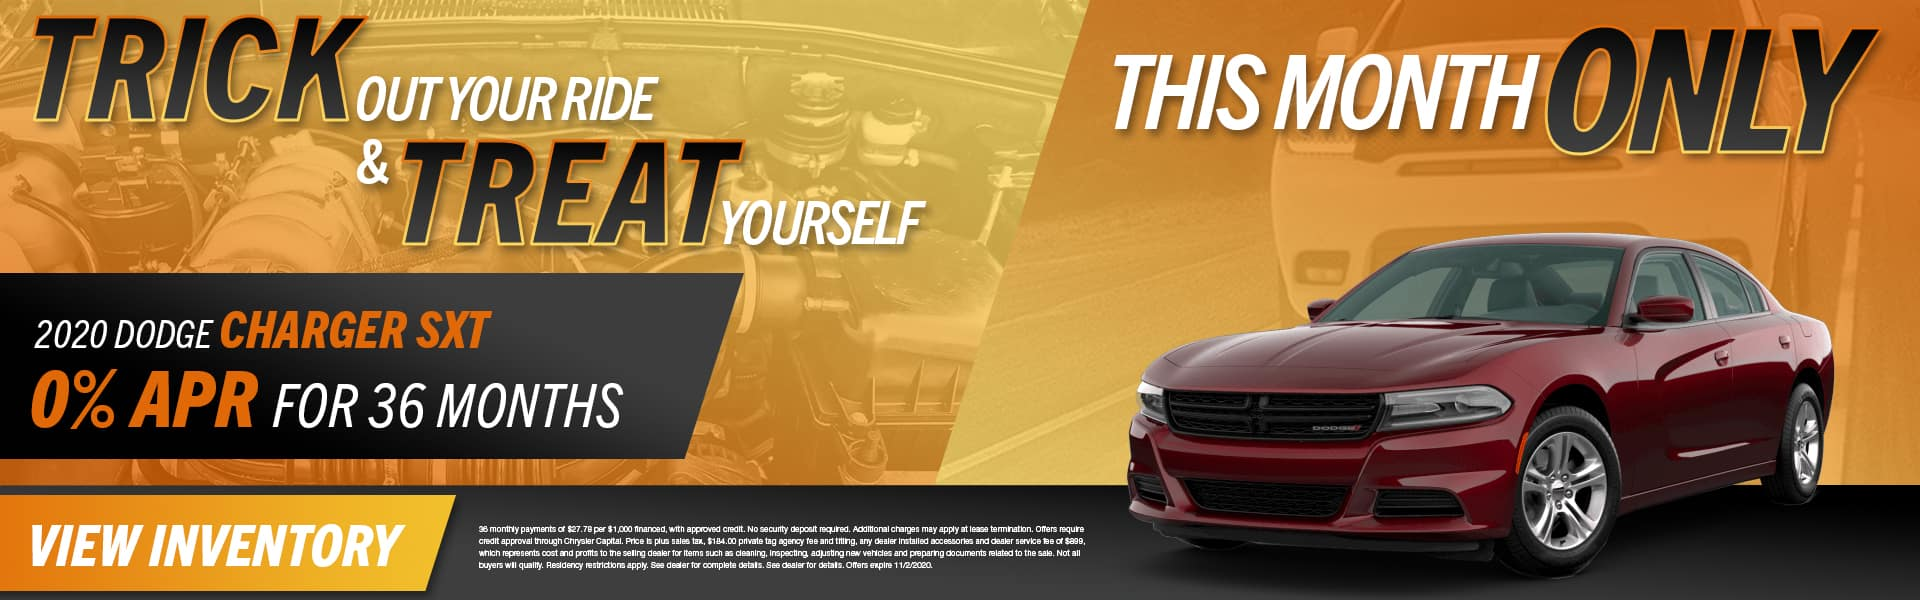 Trick Out Your Ride & Treat Yourself This Month Only | 2020 Dodge Charger SXT | 0% APR For 36 Months